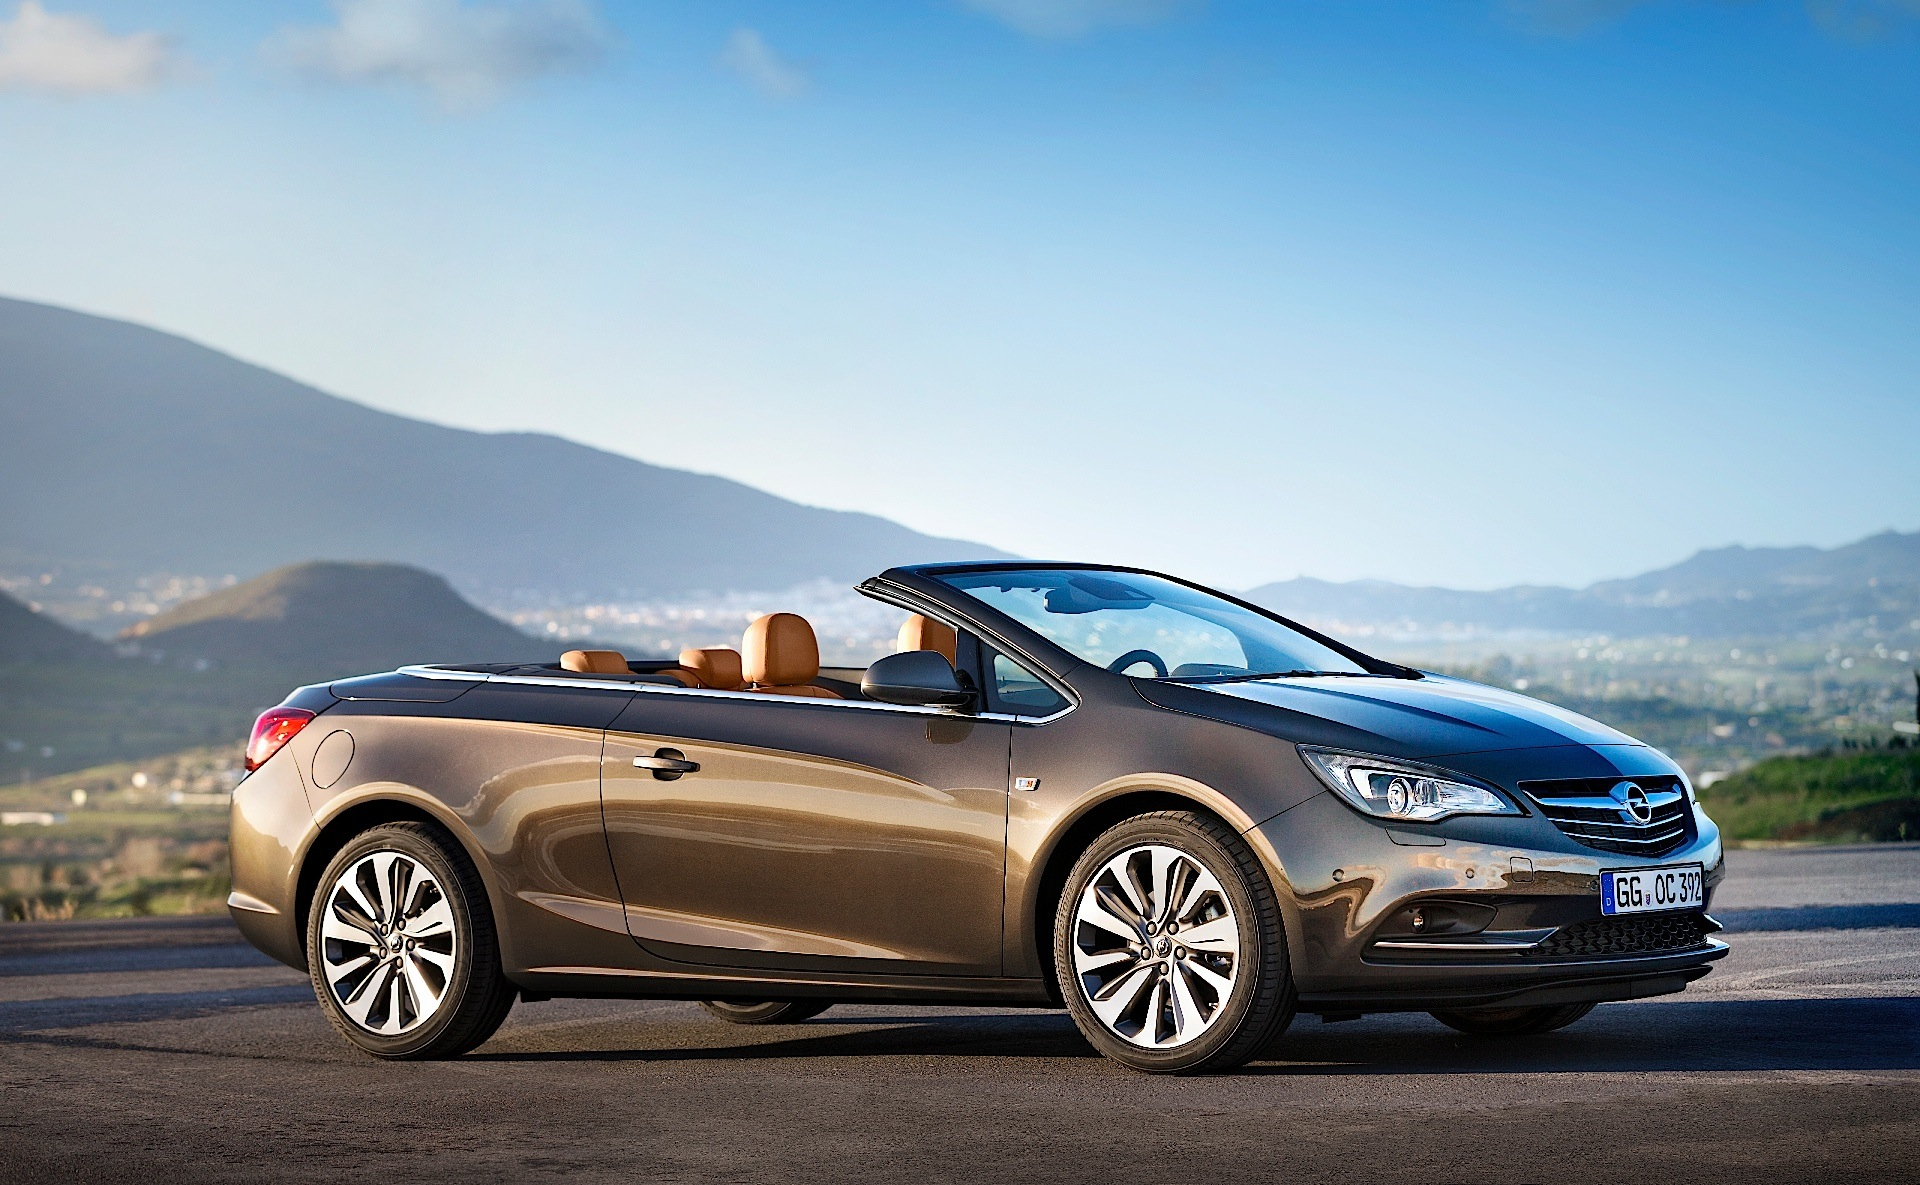 opel cascada specs photos 2013 2014 2015 2016 2017 2018 autoevolution. Black Bedroom Furniture Sets. Home Design Ideas